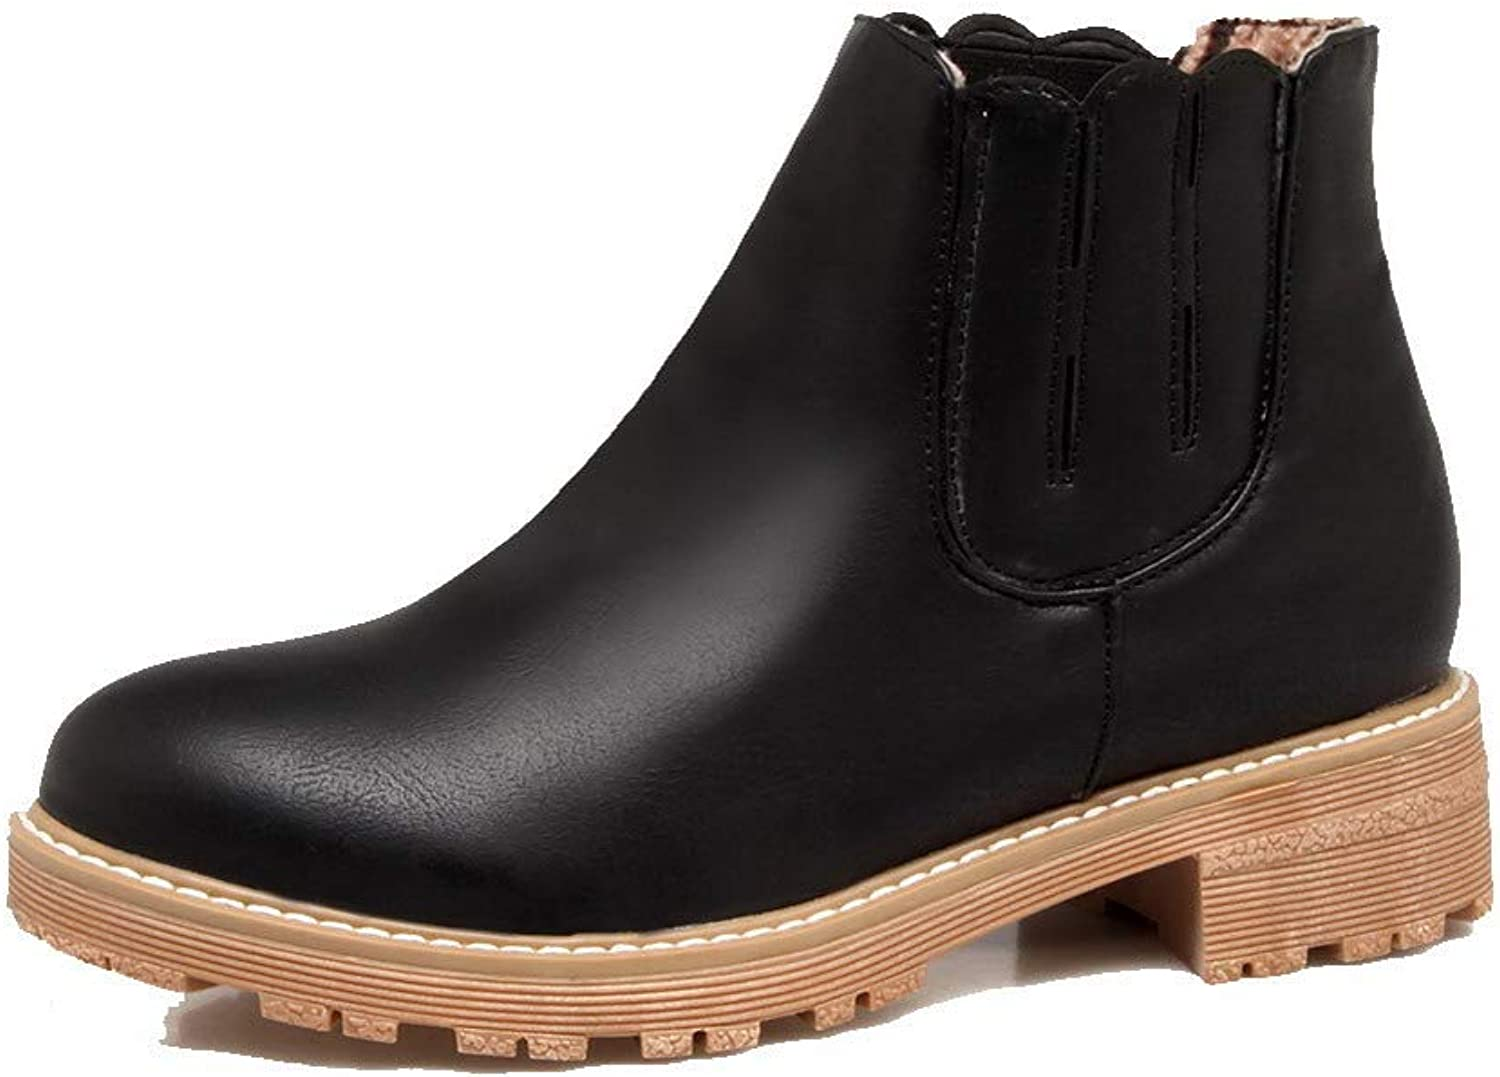 WeenFashion Women's Ankle-High Pull-On Pu Low-Heels Round-Toe Boots, AMGXX115959